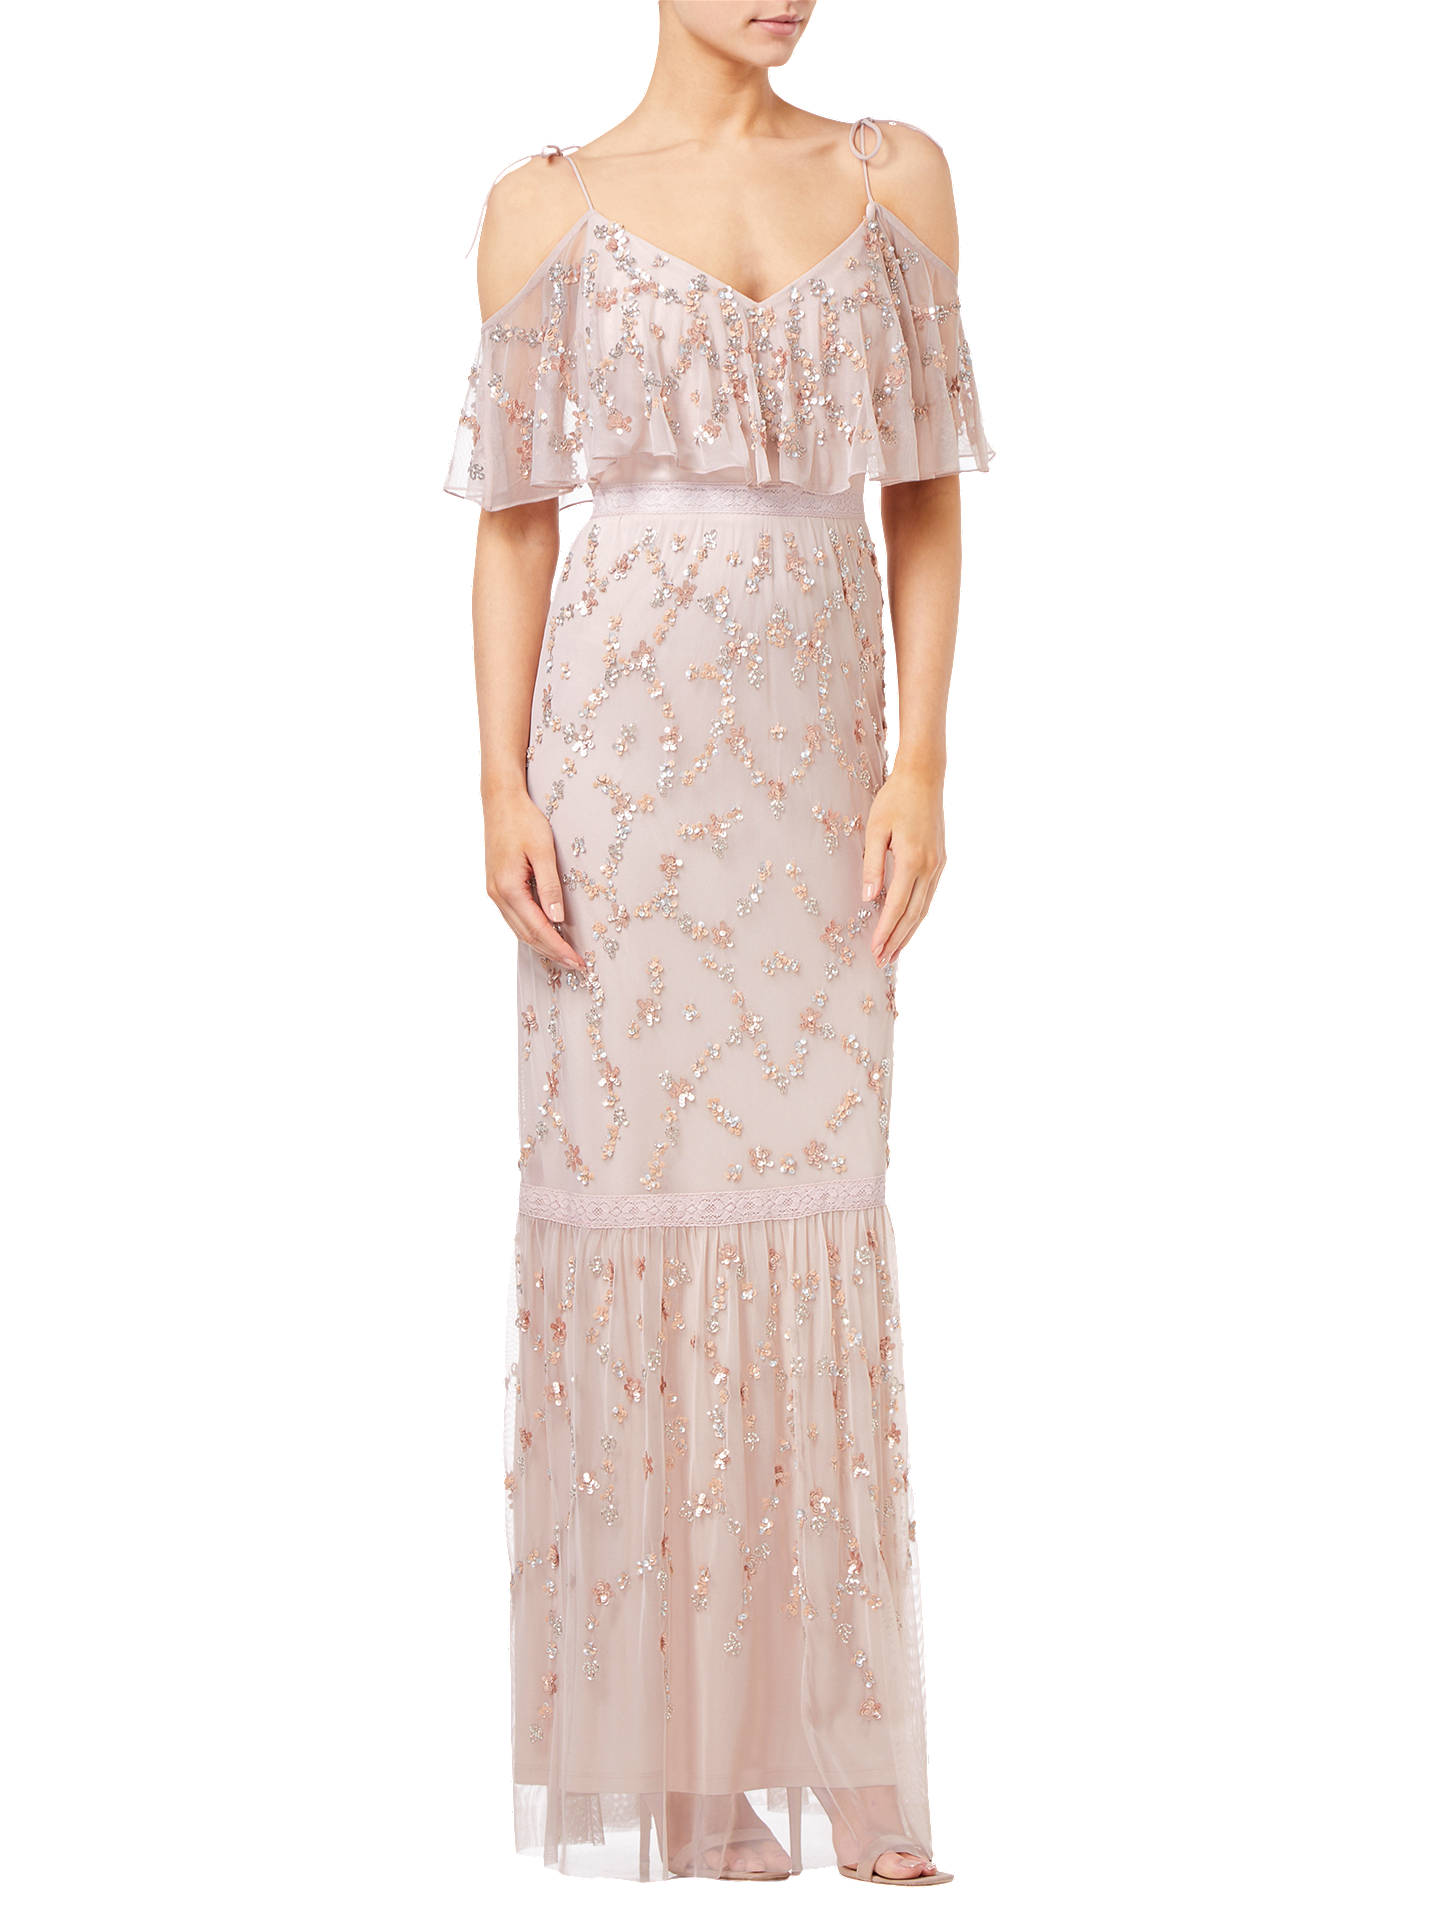 BuyAdrianna Papell Flounce Bead Mesh Dress, Pink, 8 Online at johnlewis.com